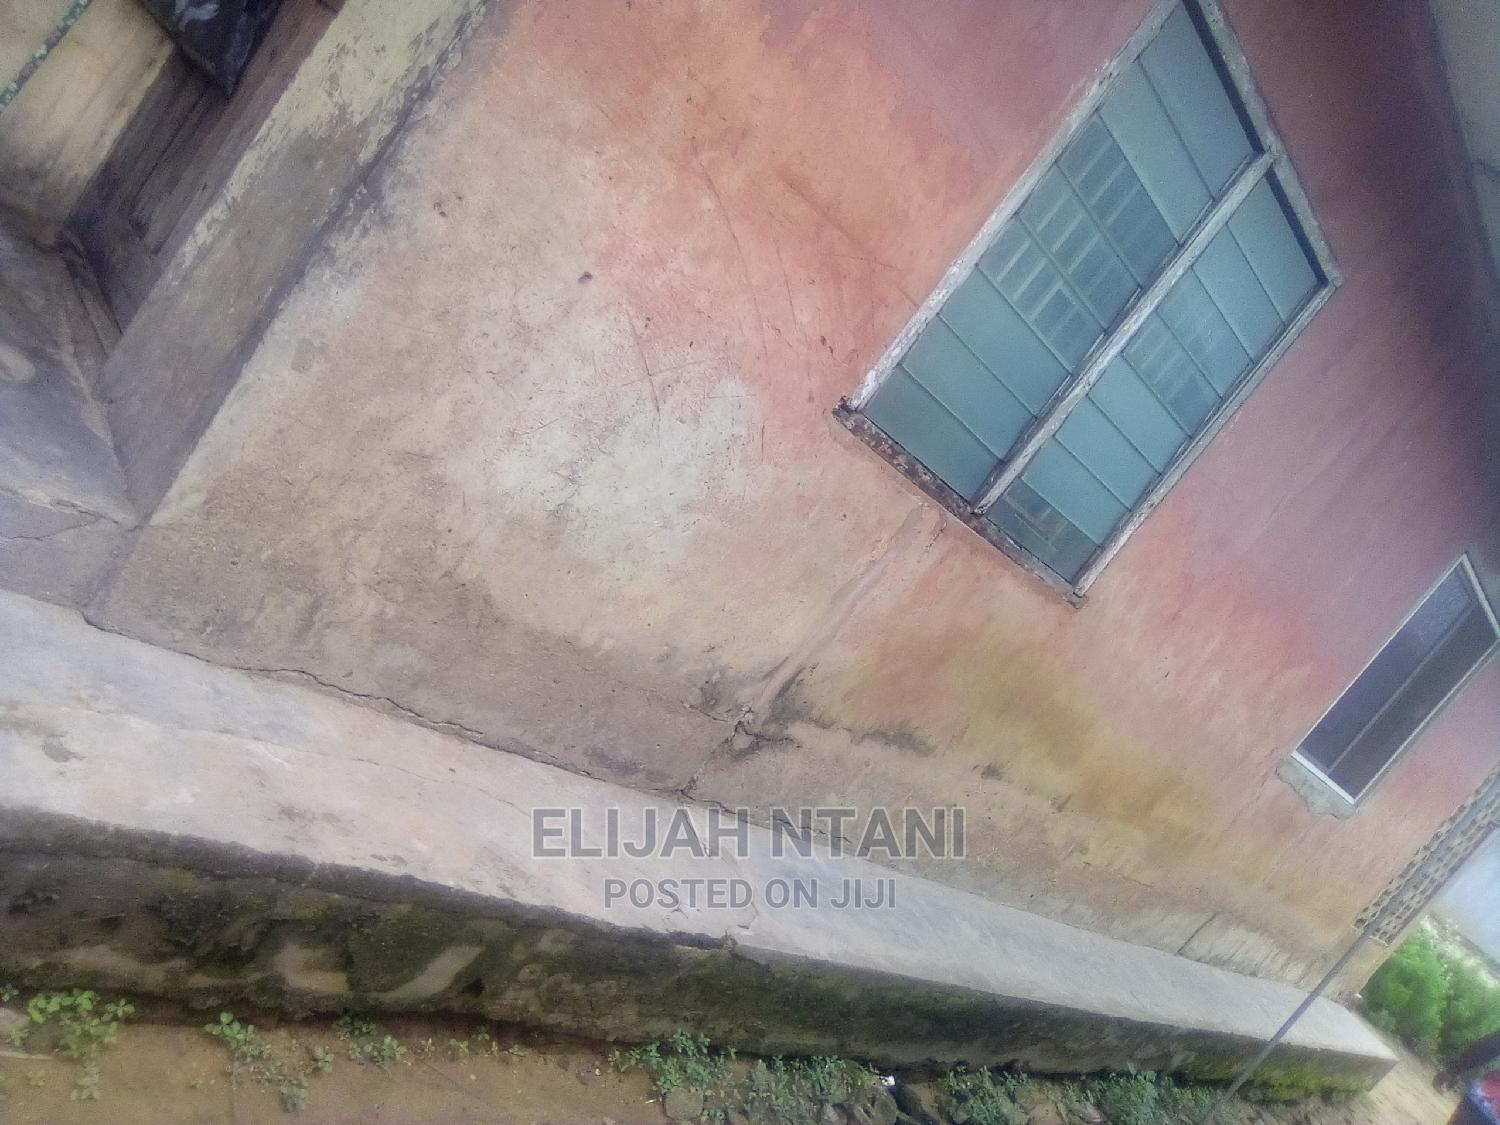 7bdrm Bungalow in Calabar for Sale